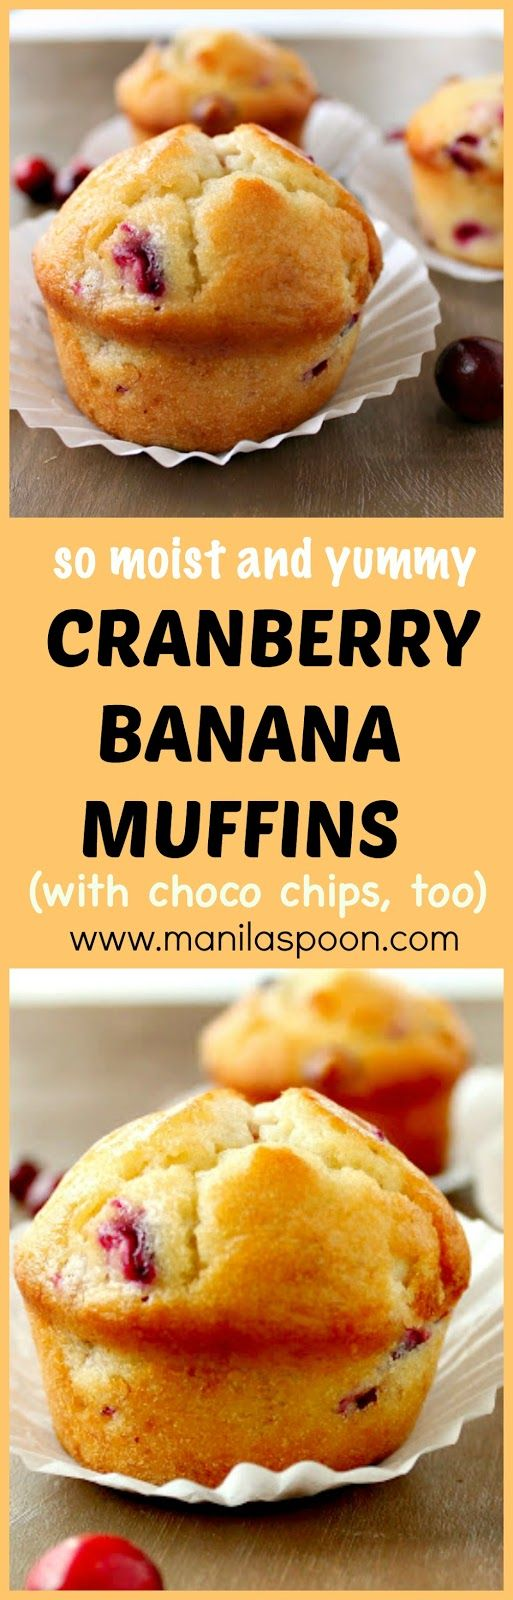 Wherever I bring these muffins I always get compliments. They look pretty with the dots of cranberry, so moist and very delicious - Cranberry Banana Muffins with Chocolate Chips, too! Use fresh, frozen or dried cranberries. | manilaspoon.com